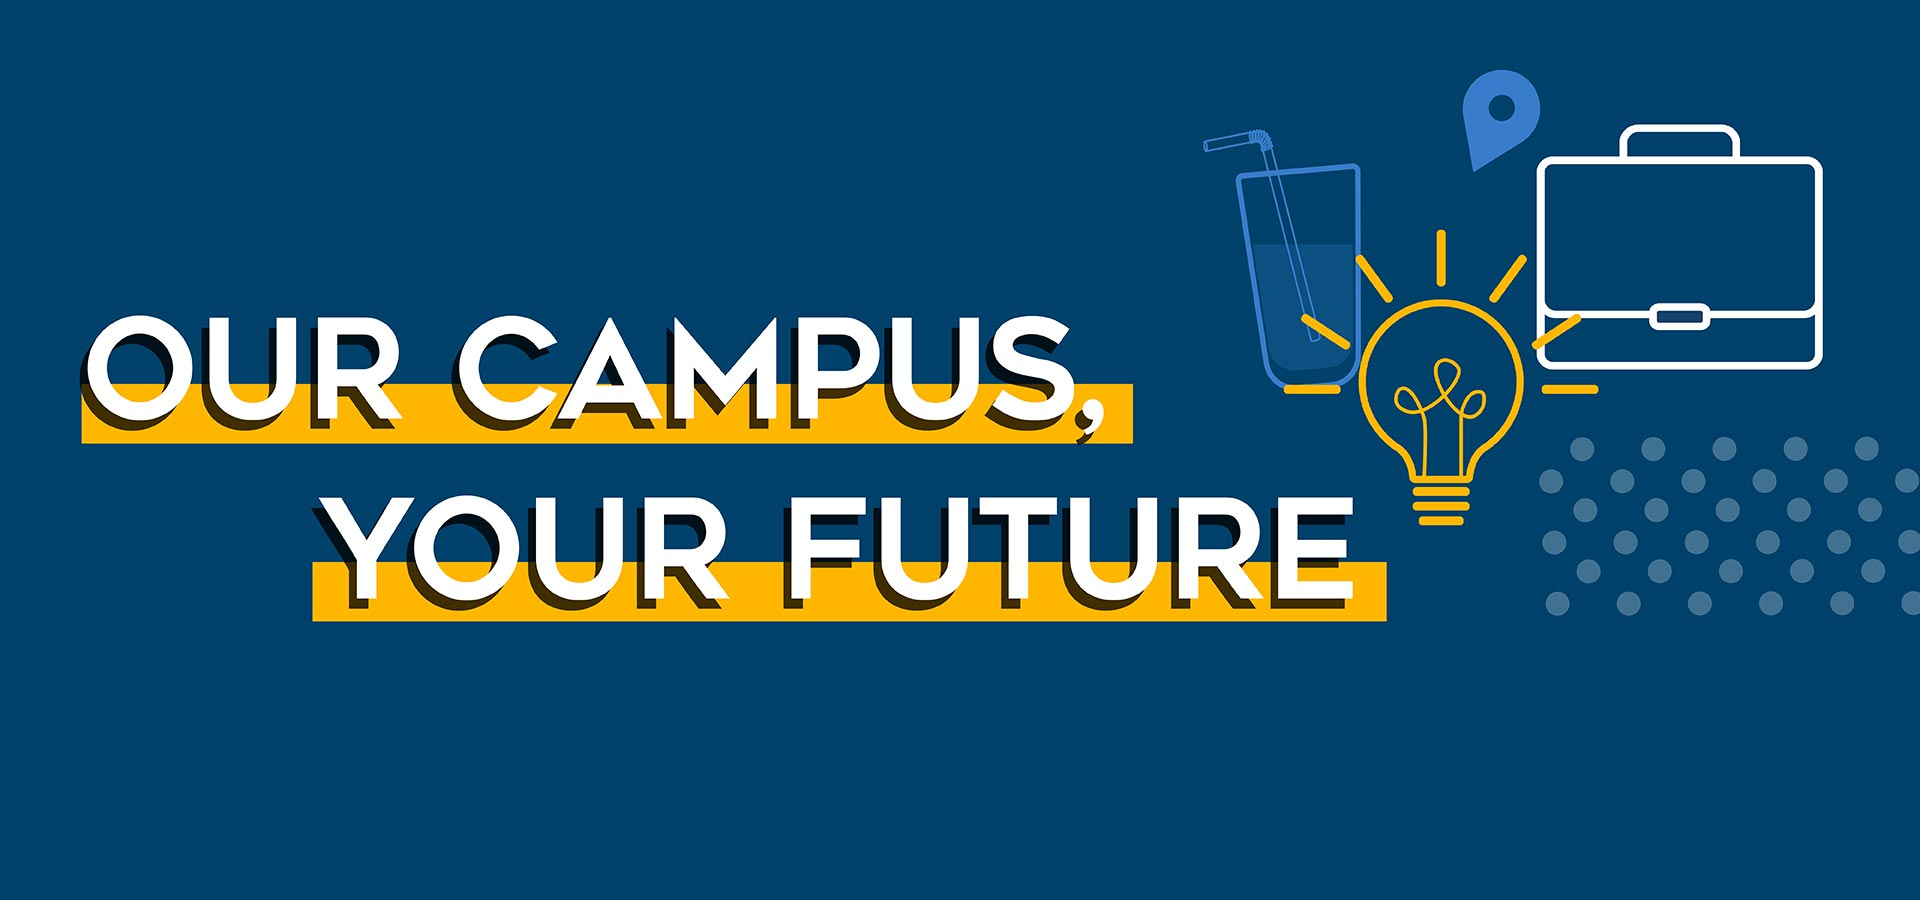 Our Campus Your Future Banner